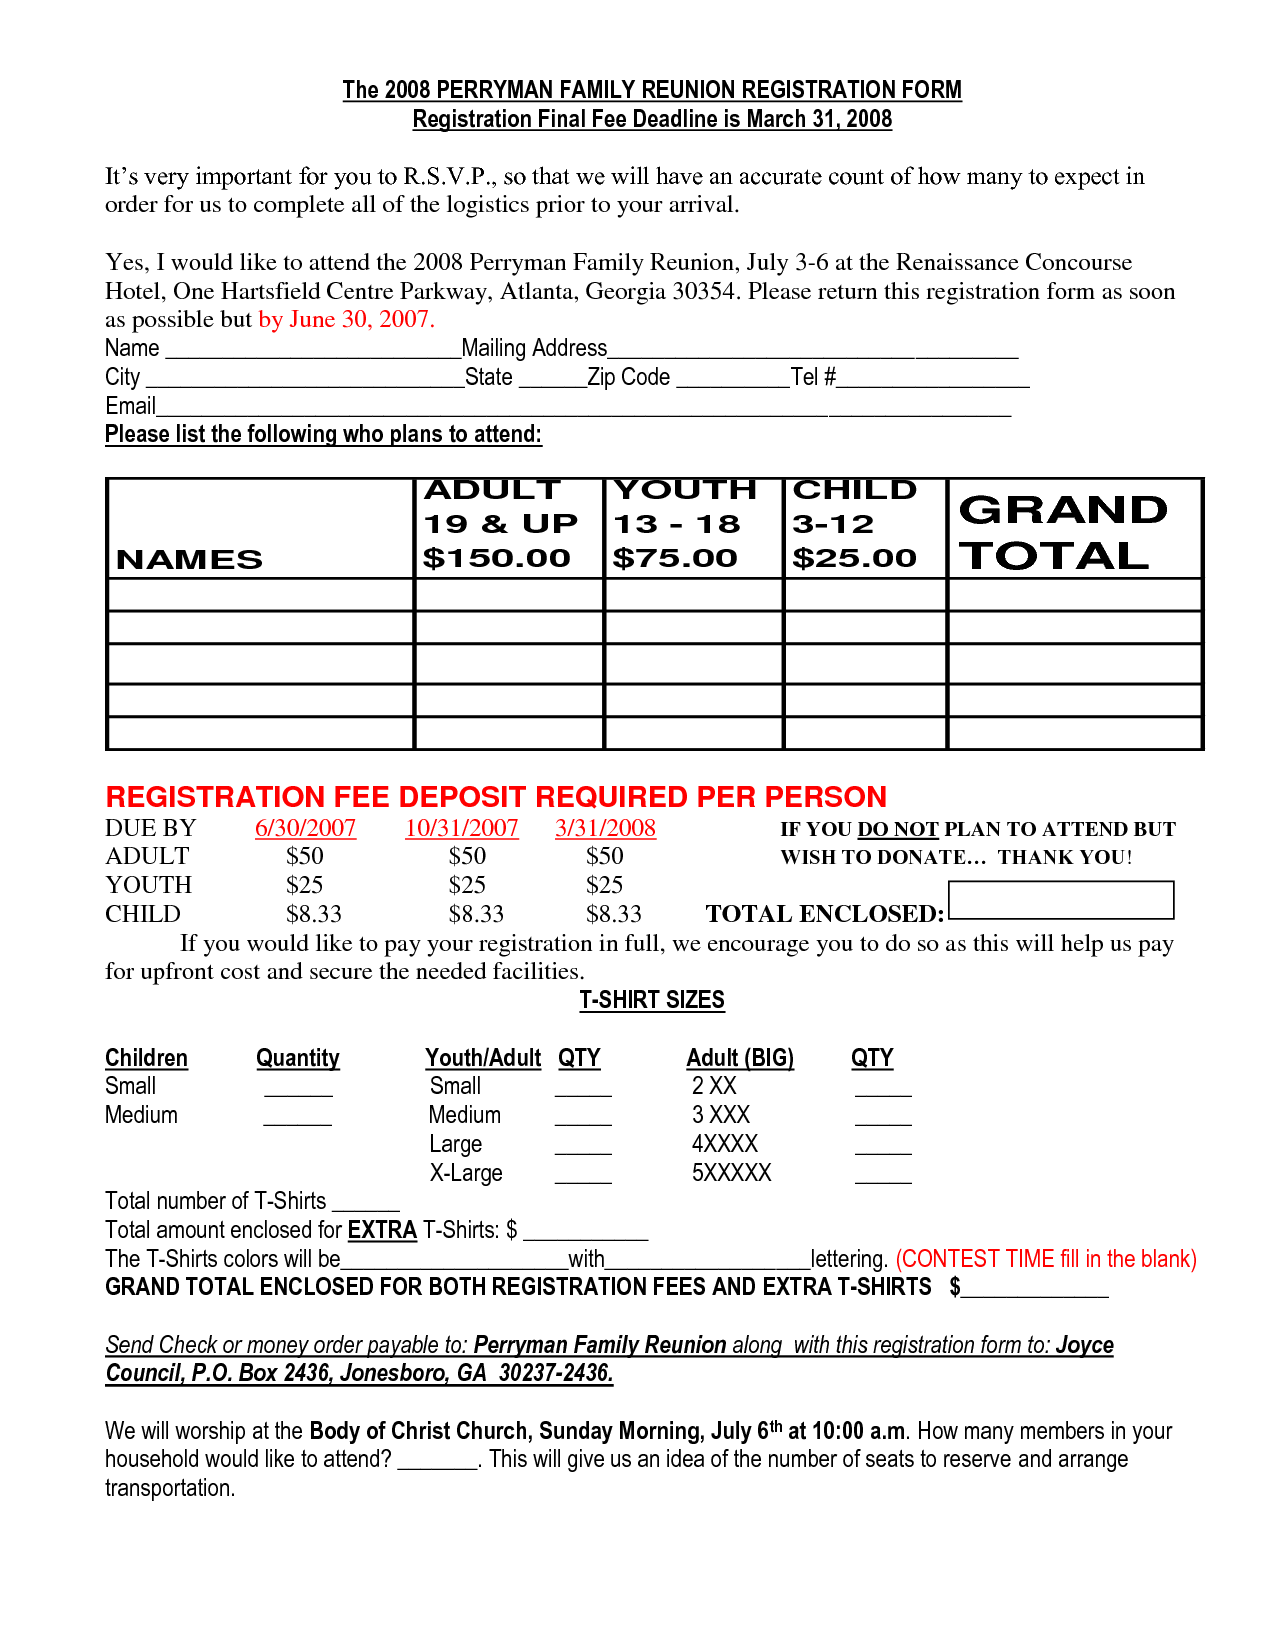 Family reunion registration packet family reunion registration family reunion invitations college graduate sample resume examples of a good essay introduction dental hygiene cover letter samples lawyer resume examples pronofoot35fo Gallery